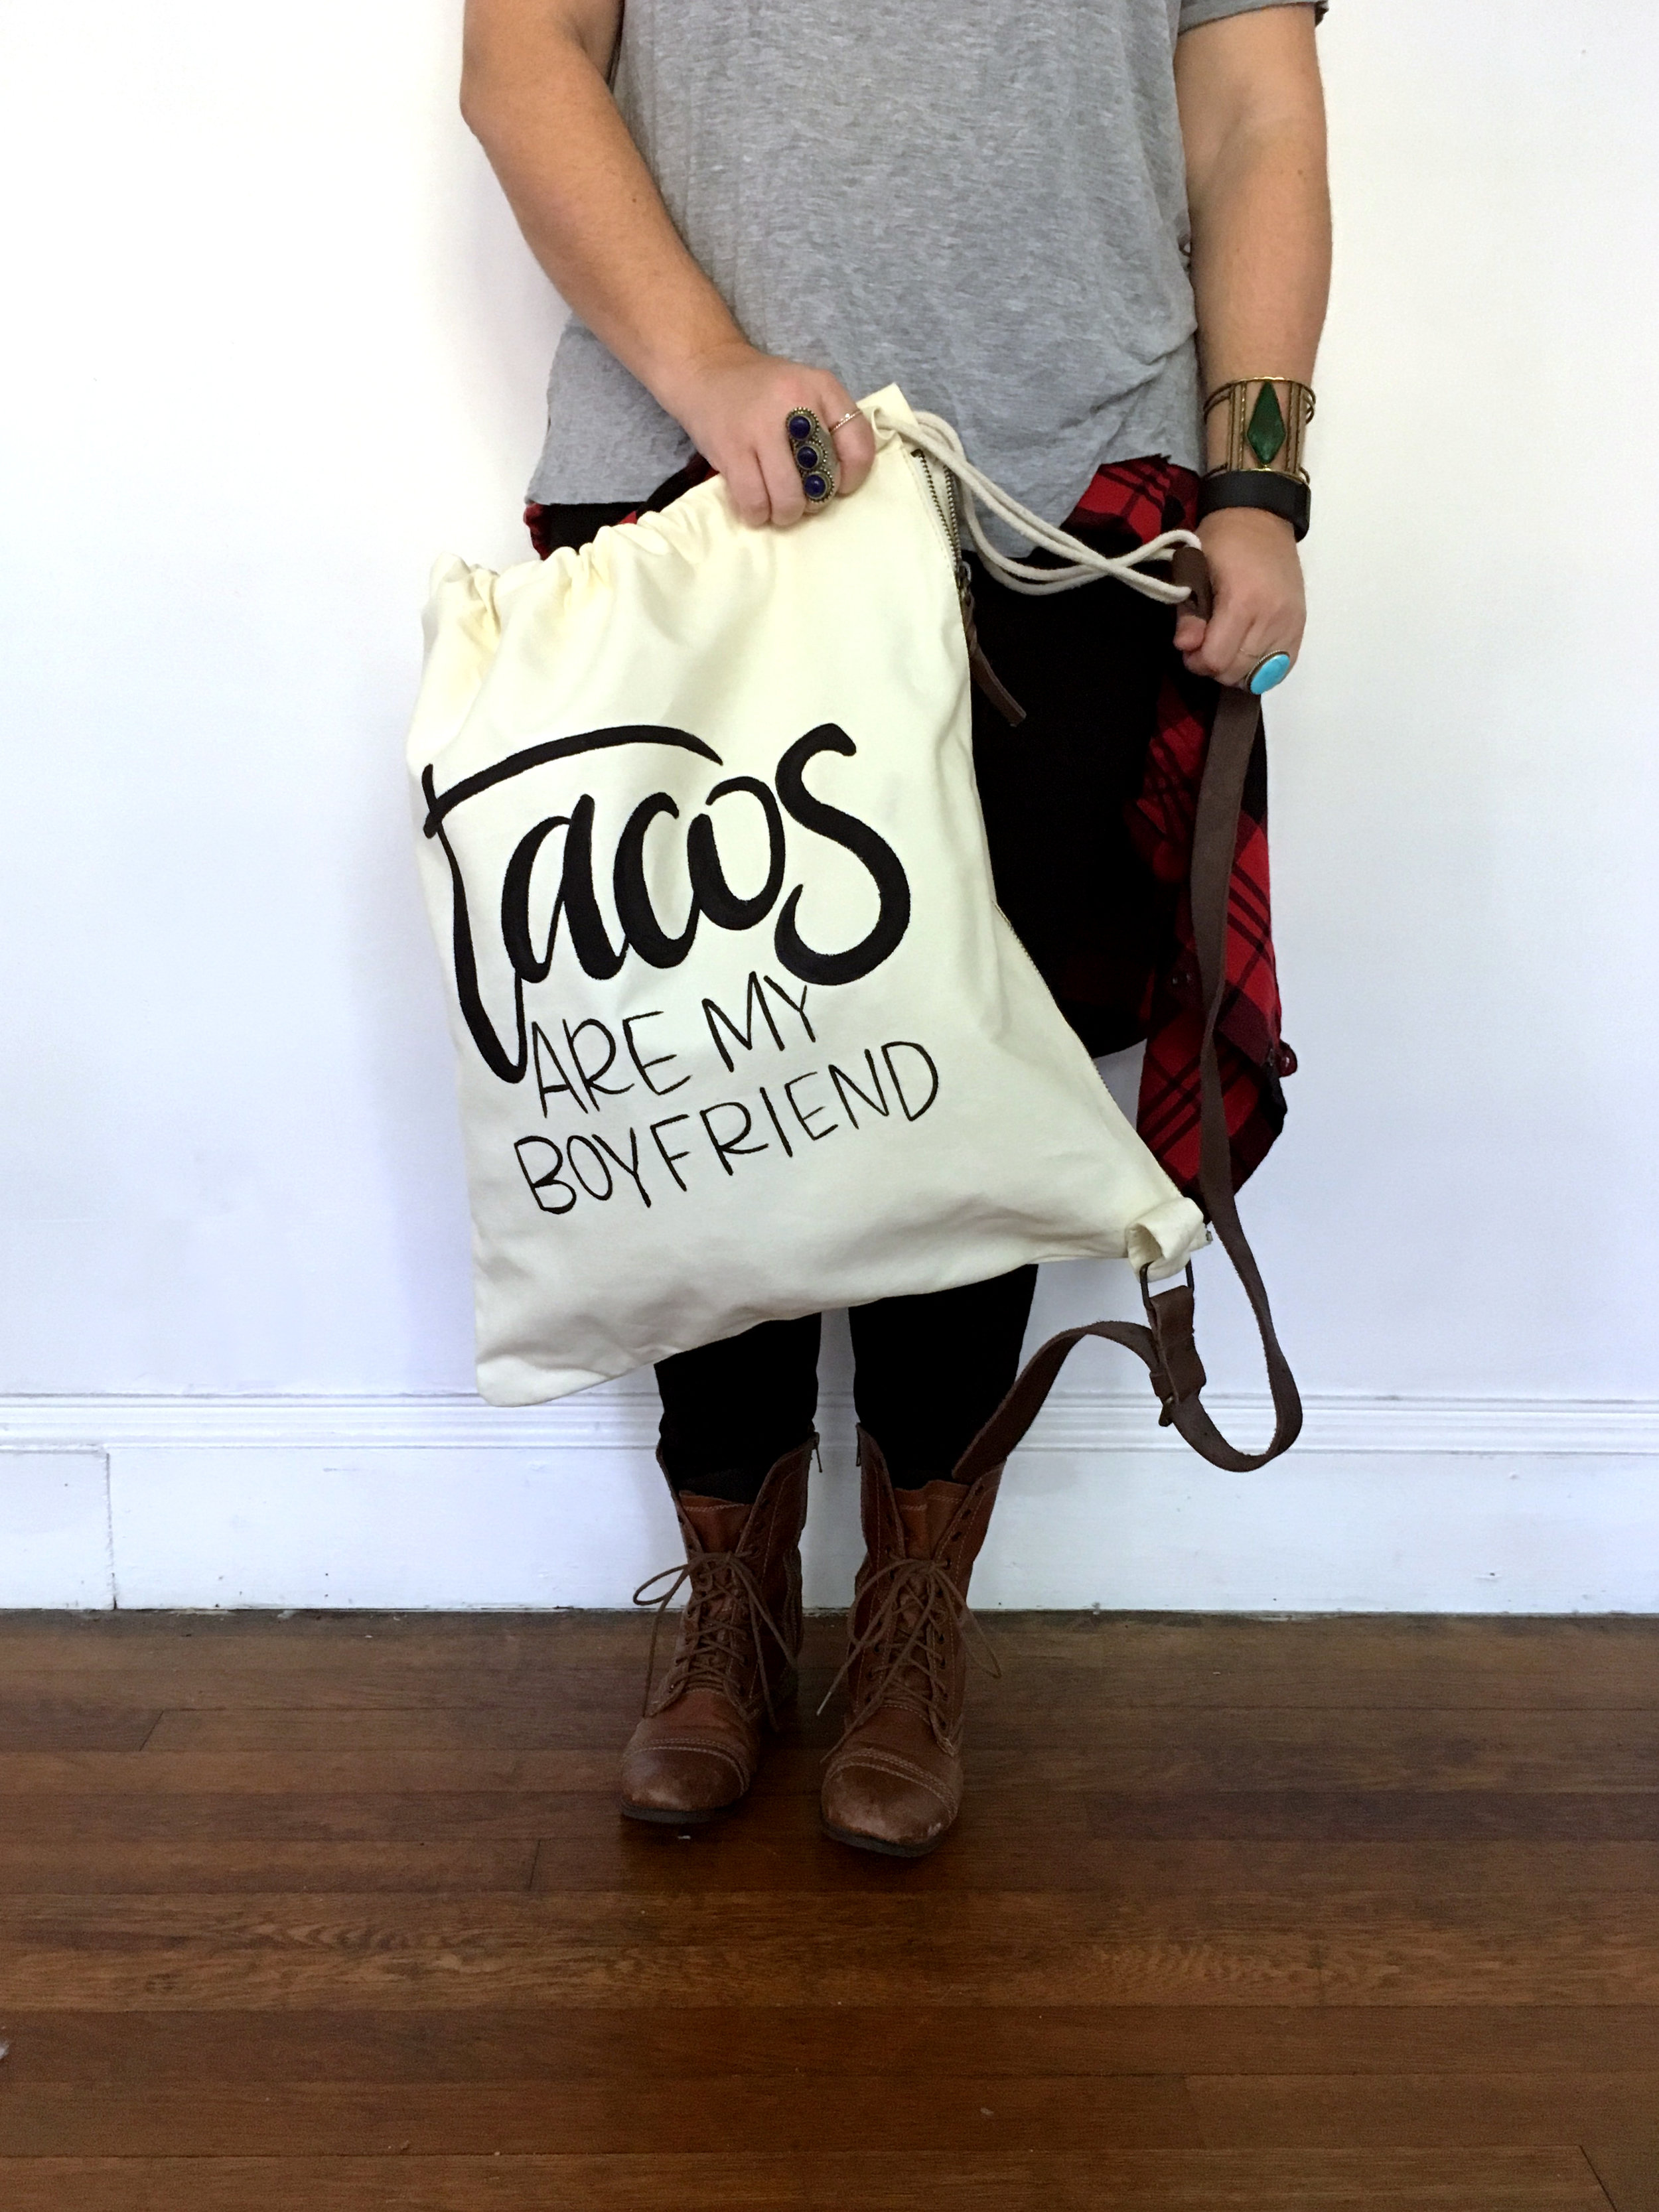 ©jenn gietzen write on! design hand lettering_canvas bag-bag size reference.jpg